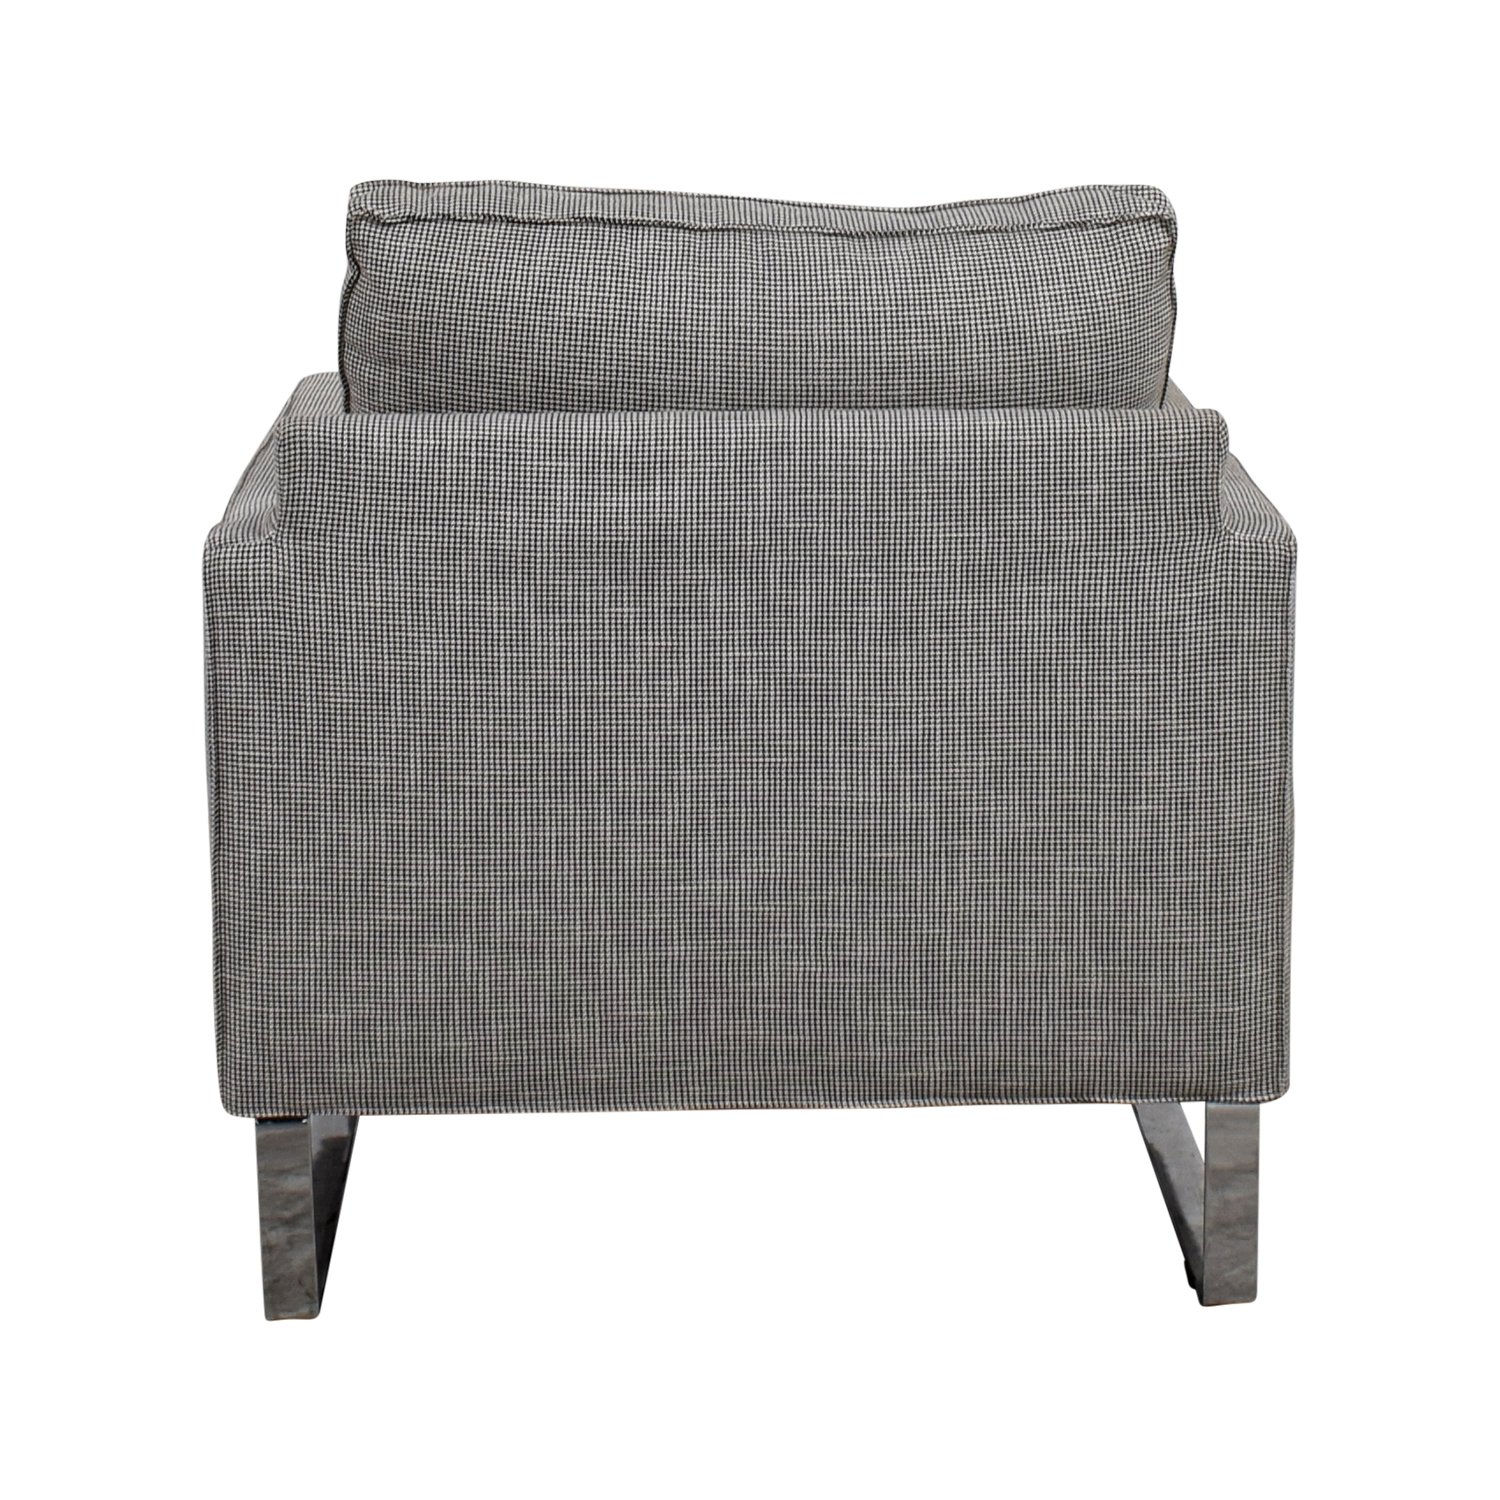 Mellby Ikea 69 Off Ikea Ikea Mellby Dogtooth Accent Chair Chairs